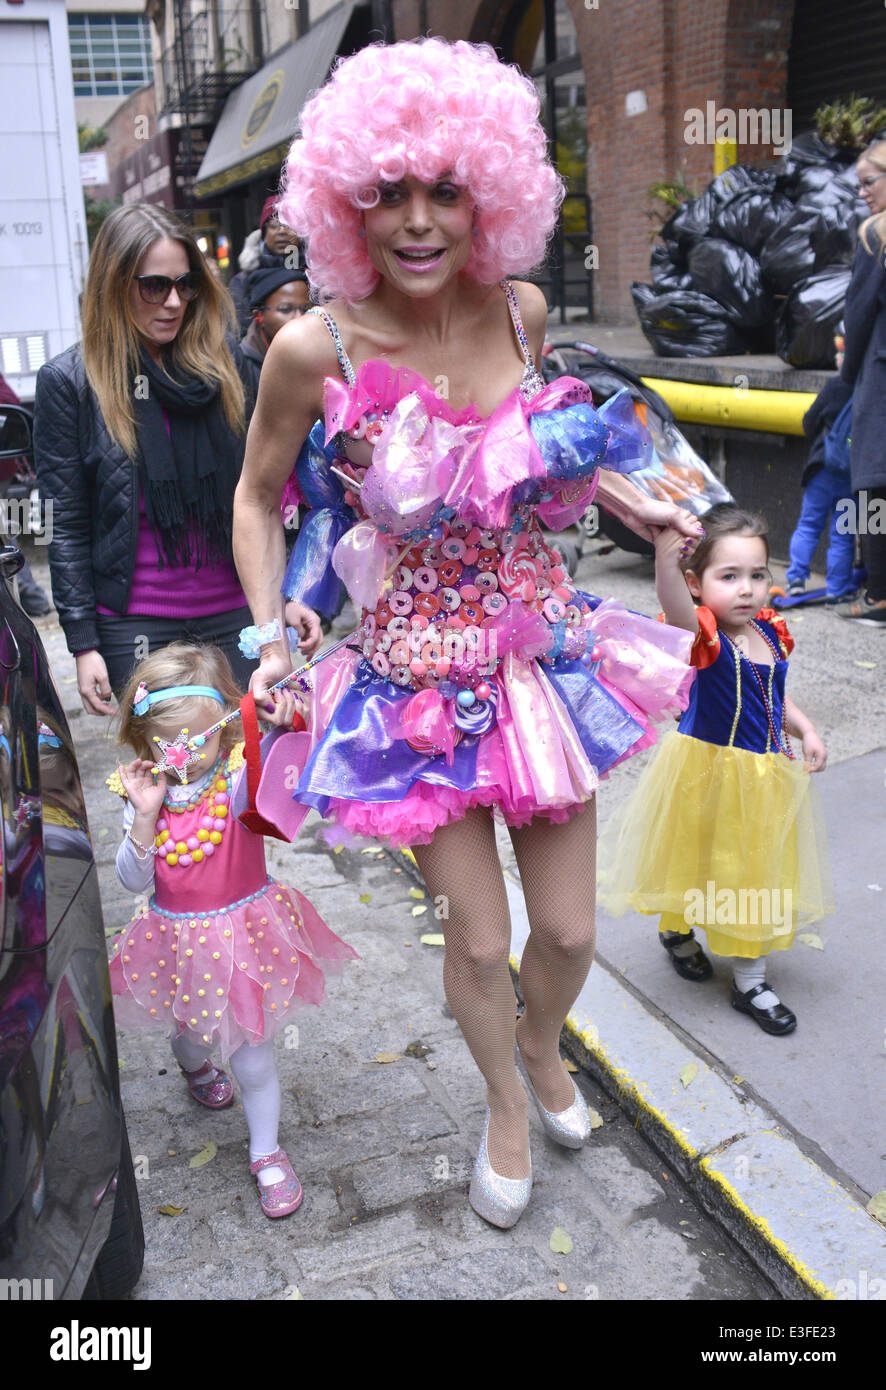 Bethenny Frankel dressed up for Halloween in a pink wig and dress on the school run to pick up her daughter Bryn Featuring Bethanny FrankelBryn Hoppy ...  sc 1 st  Alamy & Bethenny Frankel dressed up for Halloween in a pink wig and dress on ...